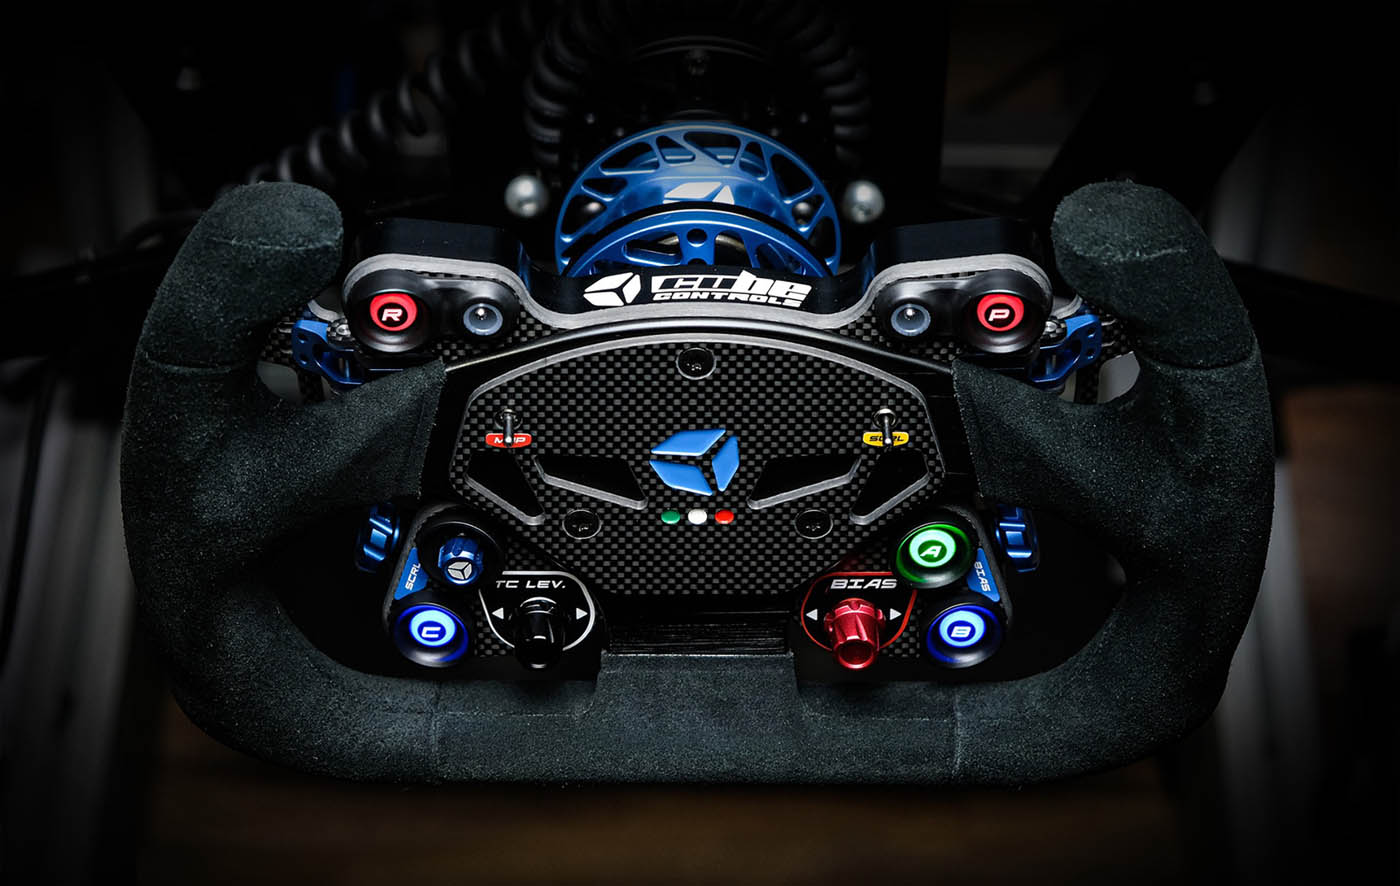 Cube Controls GT Pro Zero - mounted on rig - G-Performance